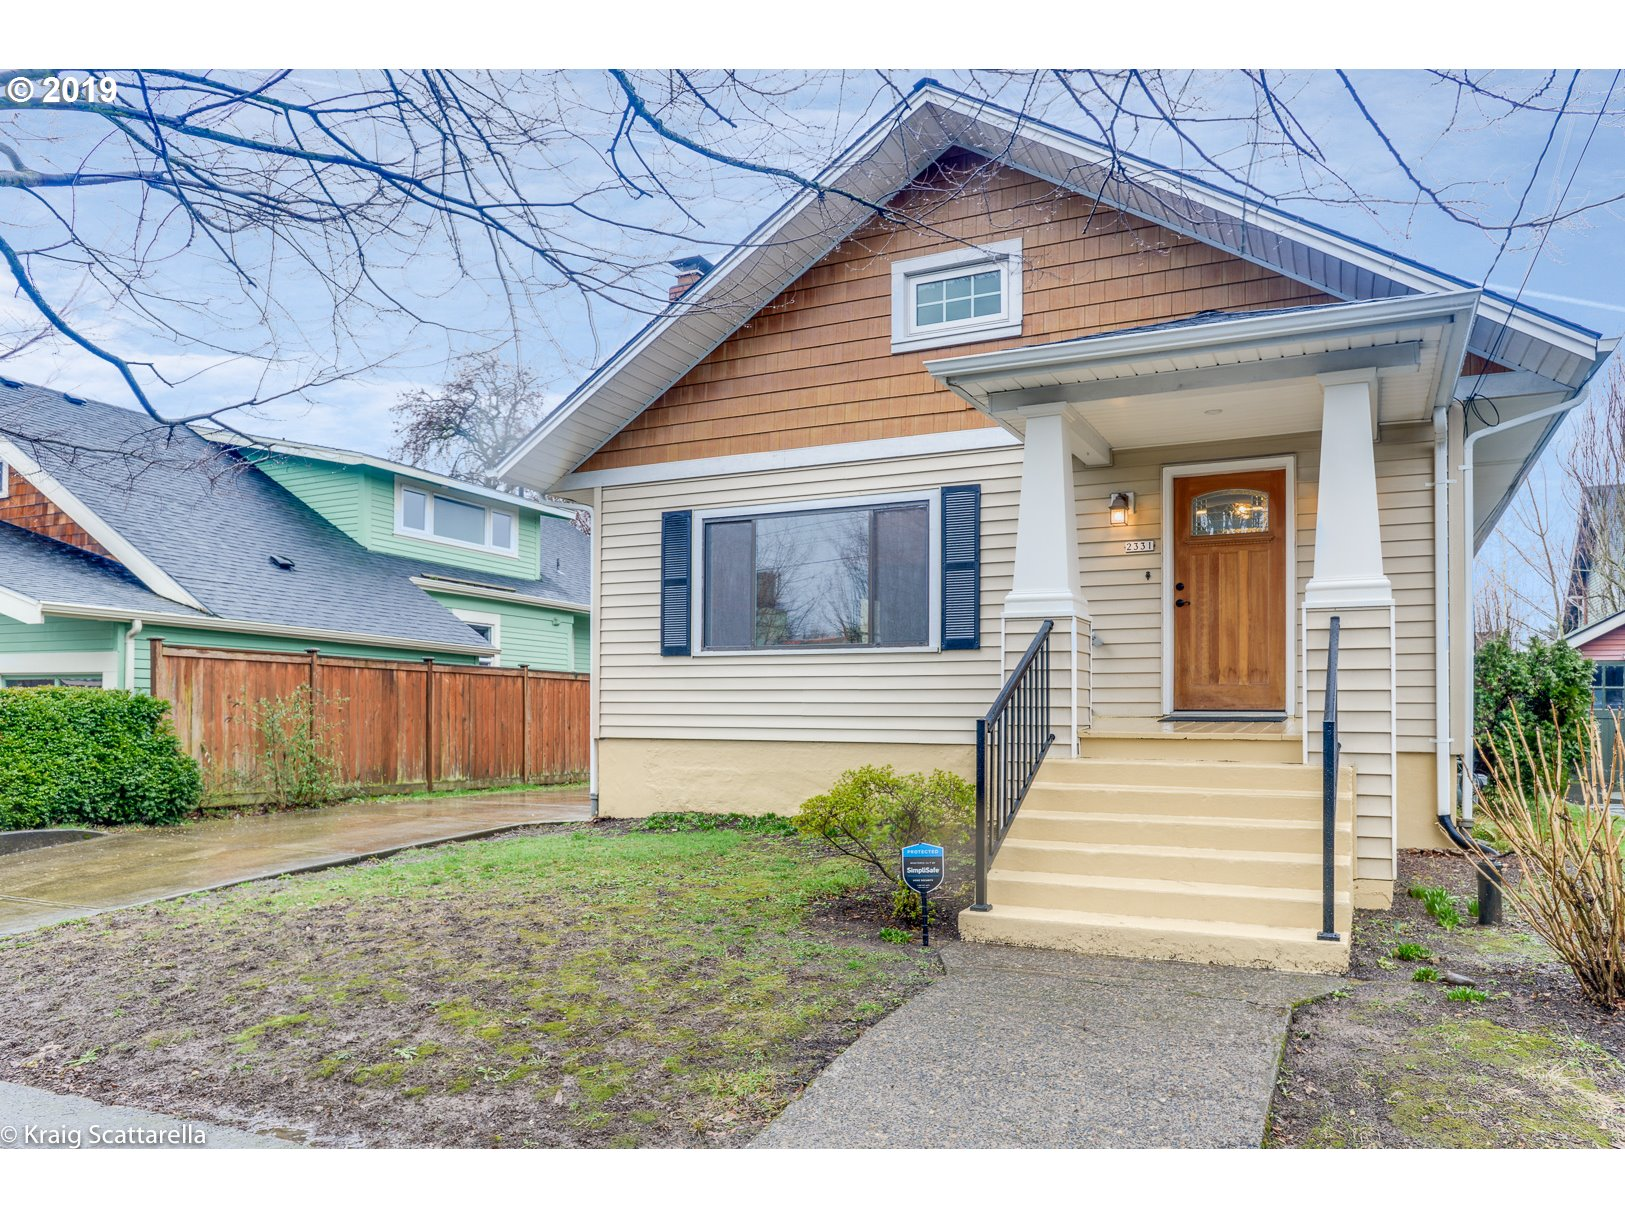 2331 NE 47TH AVE Portland Home Listings - The Rob Levy Team Real Estate